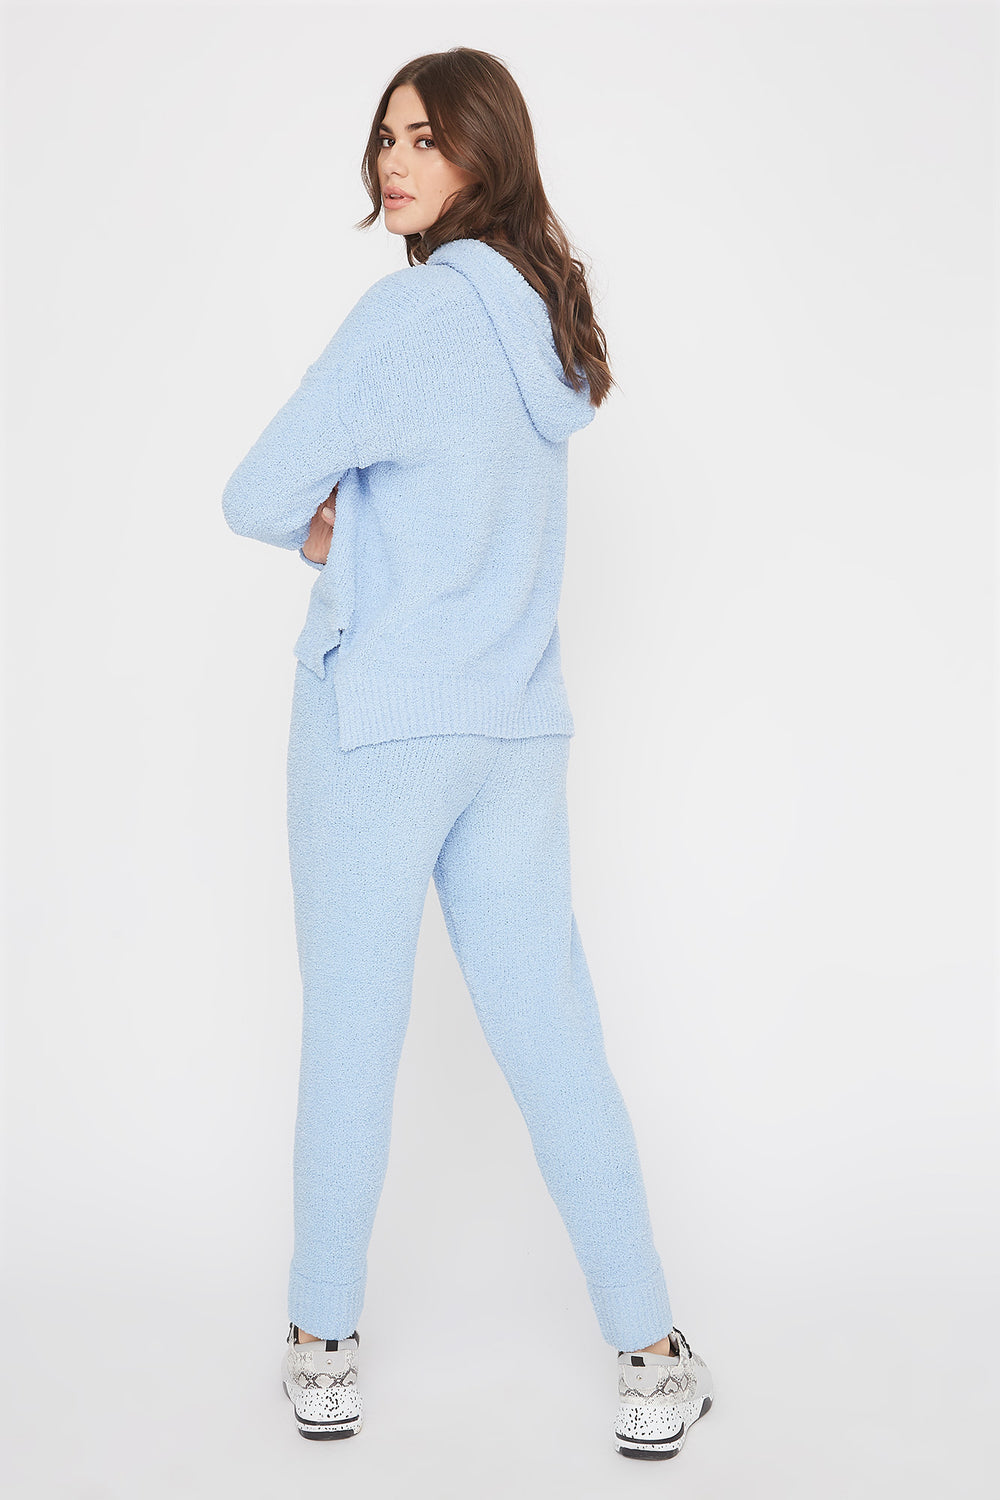 Pantalon de jogging super doux Bleu pale